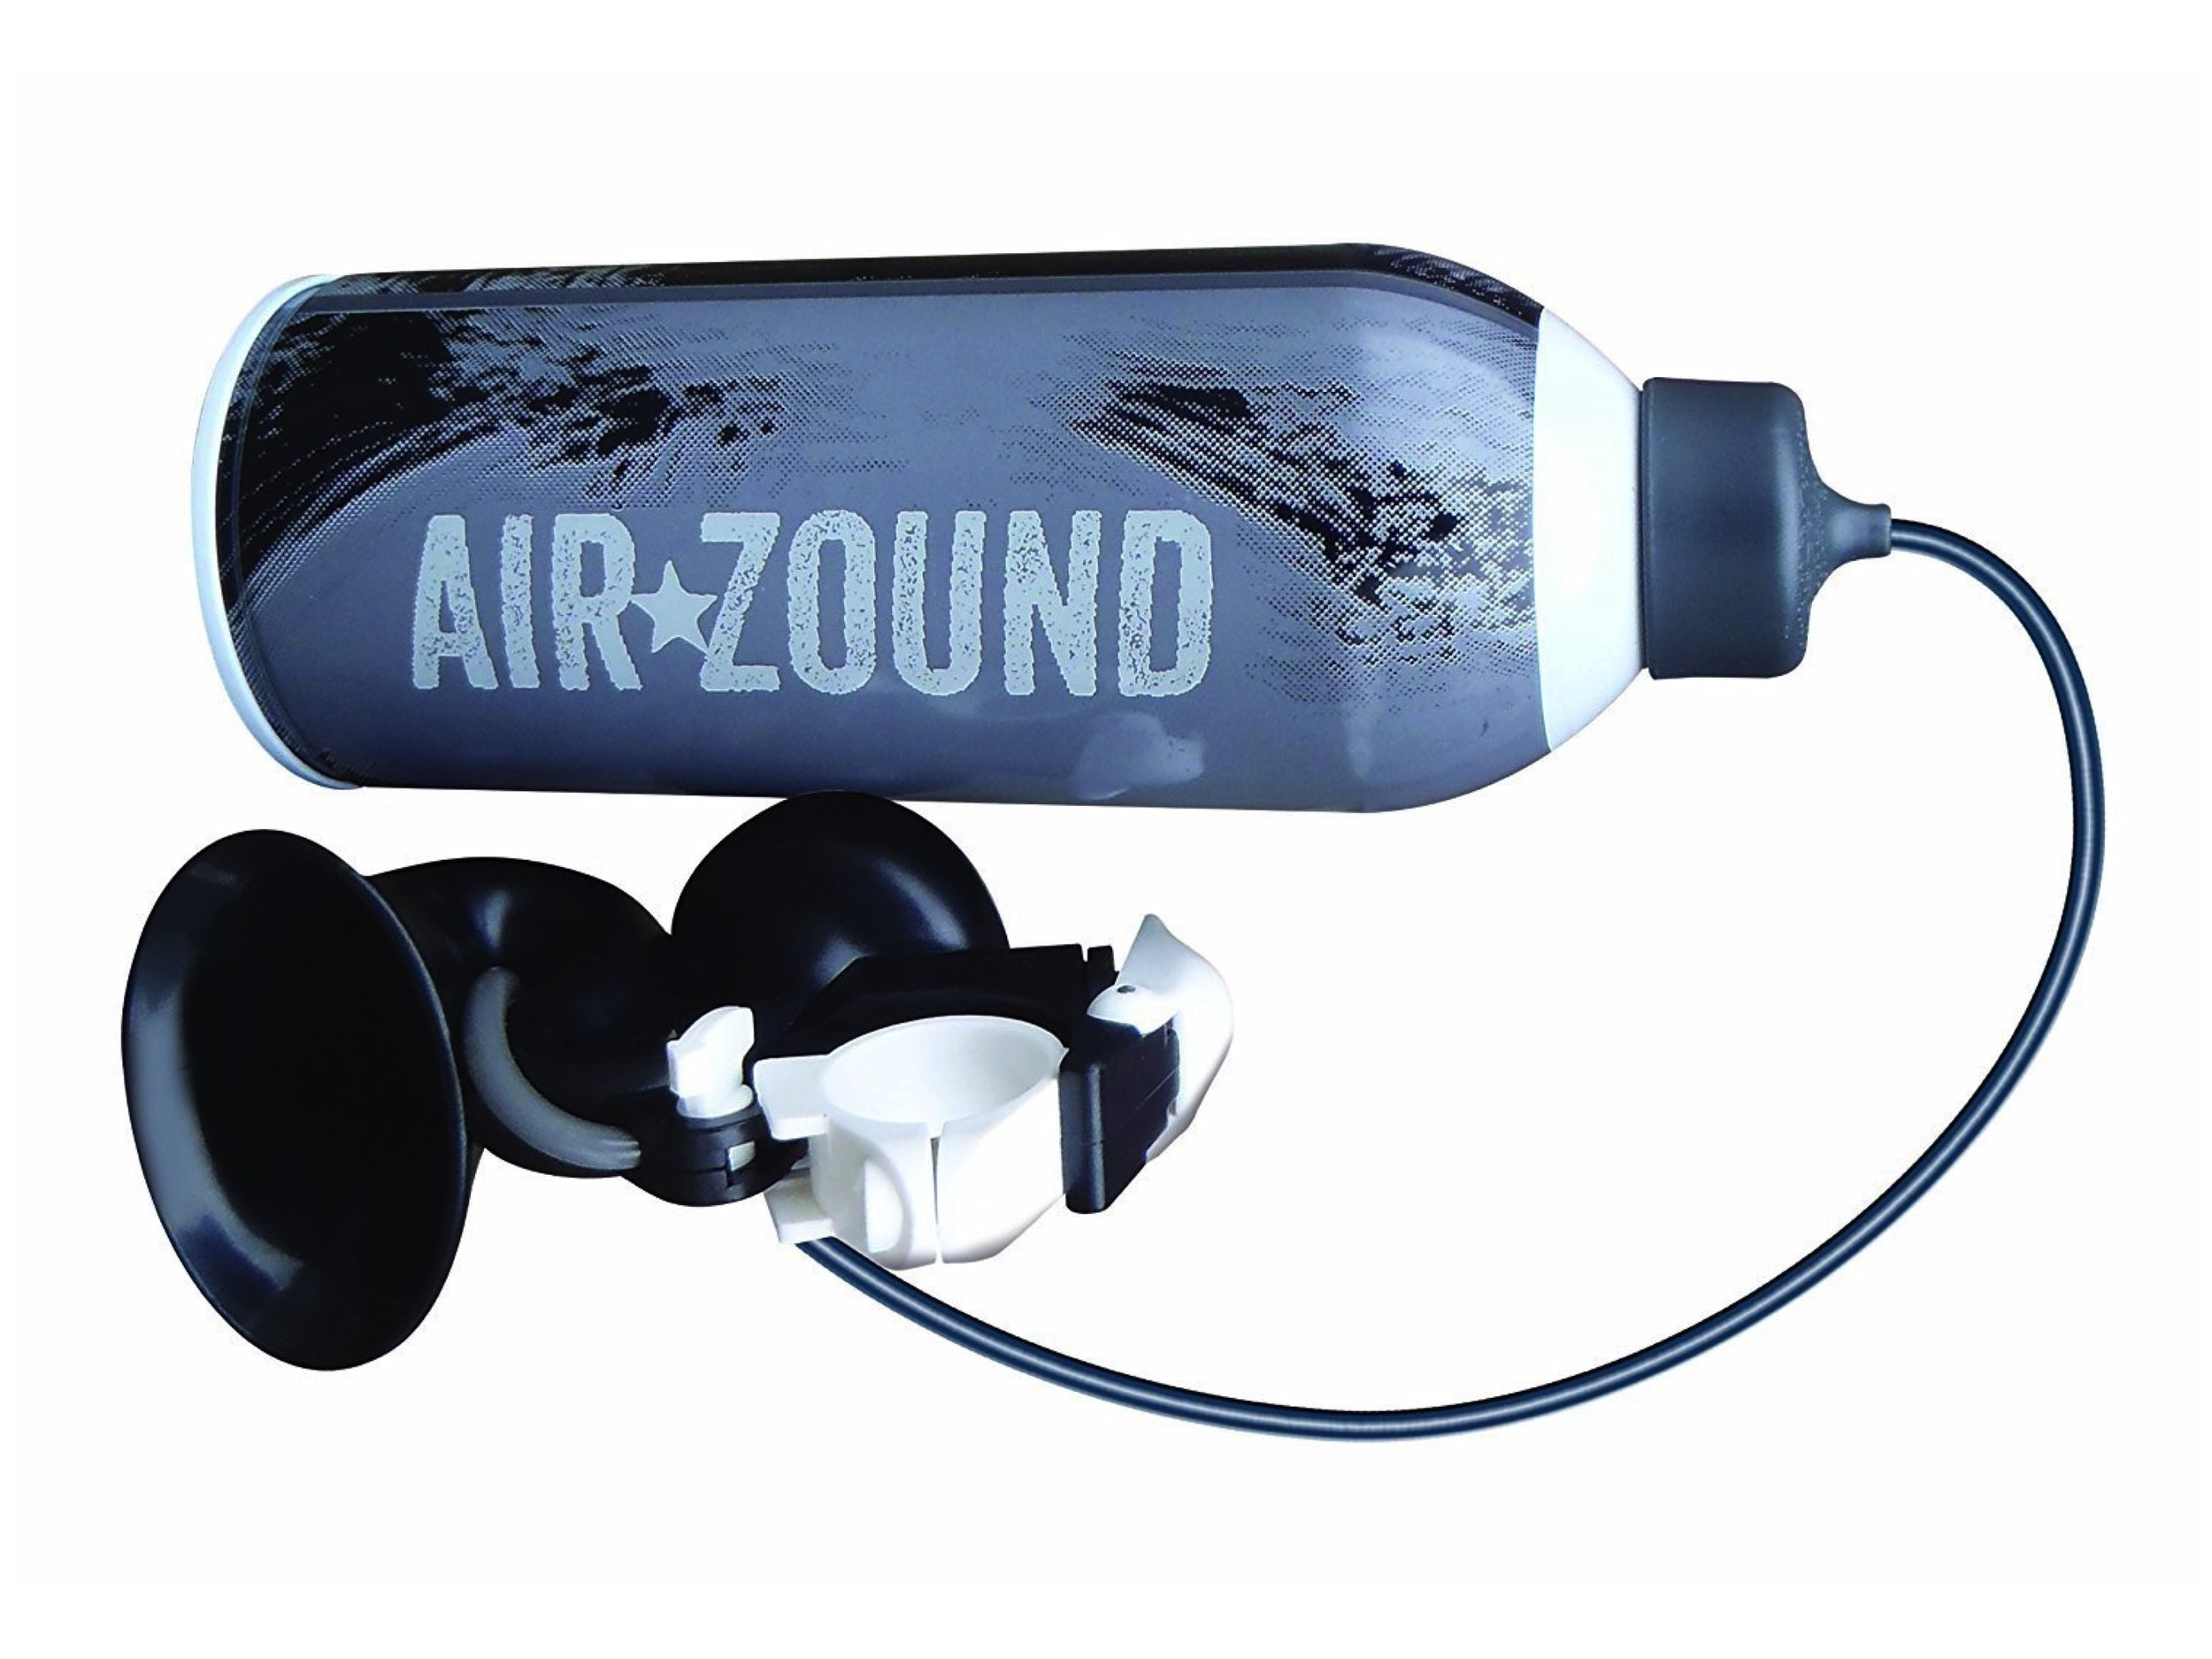 Air Zound - Fantastic and immensely loud bicycle air horn